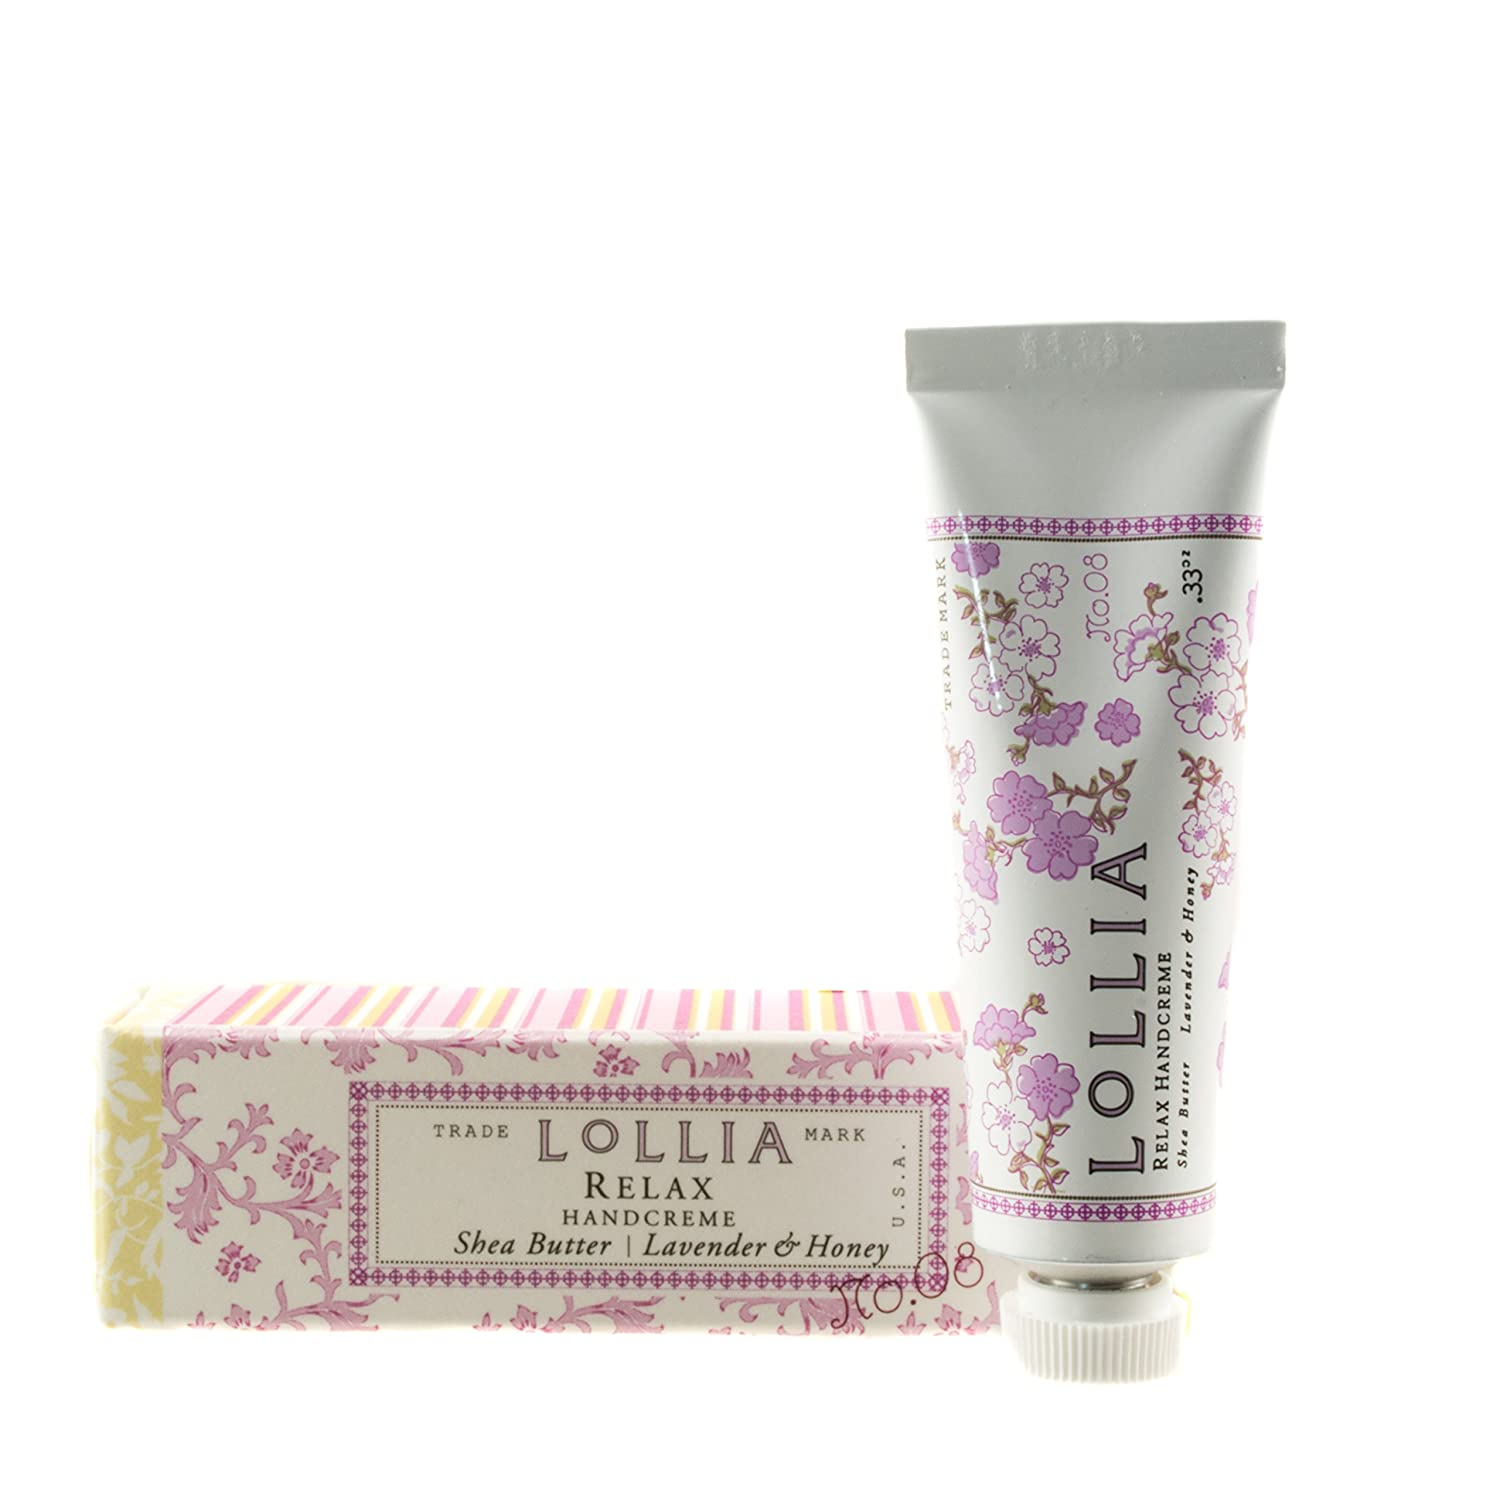 Lollia Relax Petite Treat Shea Butter Handcreme-0.33 oz.